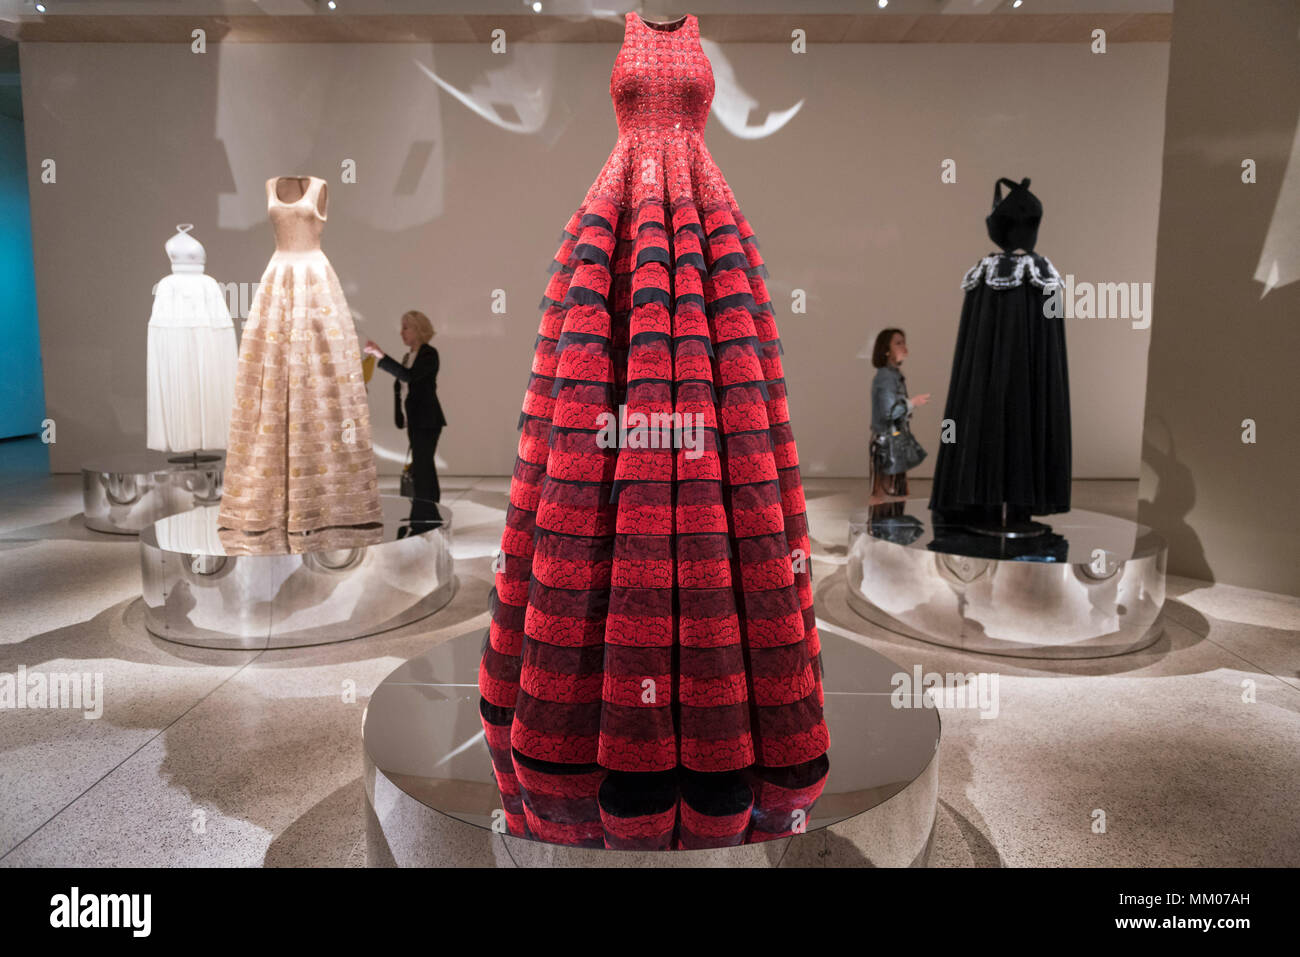 London, UK.  9 May 2018.  Visitors at the preview of 'Azzedine Alaïa:  The Couturier', the first UK exhibition of Azzedine Alaïa examining the work of one of the most respected fashion designers in history.  Over 60 rare and iconic garments are on display alongside a series of specially commissioned pieces.  The exhibition runs 10 May to 7 October 2018 at the Design Museum.   Credit: Stephen Chung / Alamy Live News - Stock Image